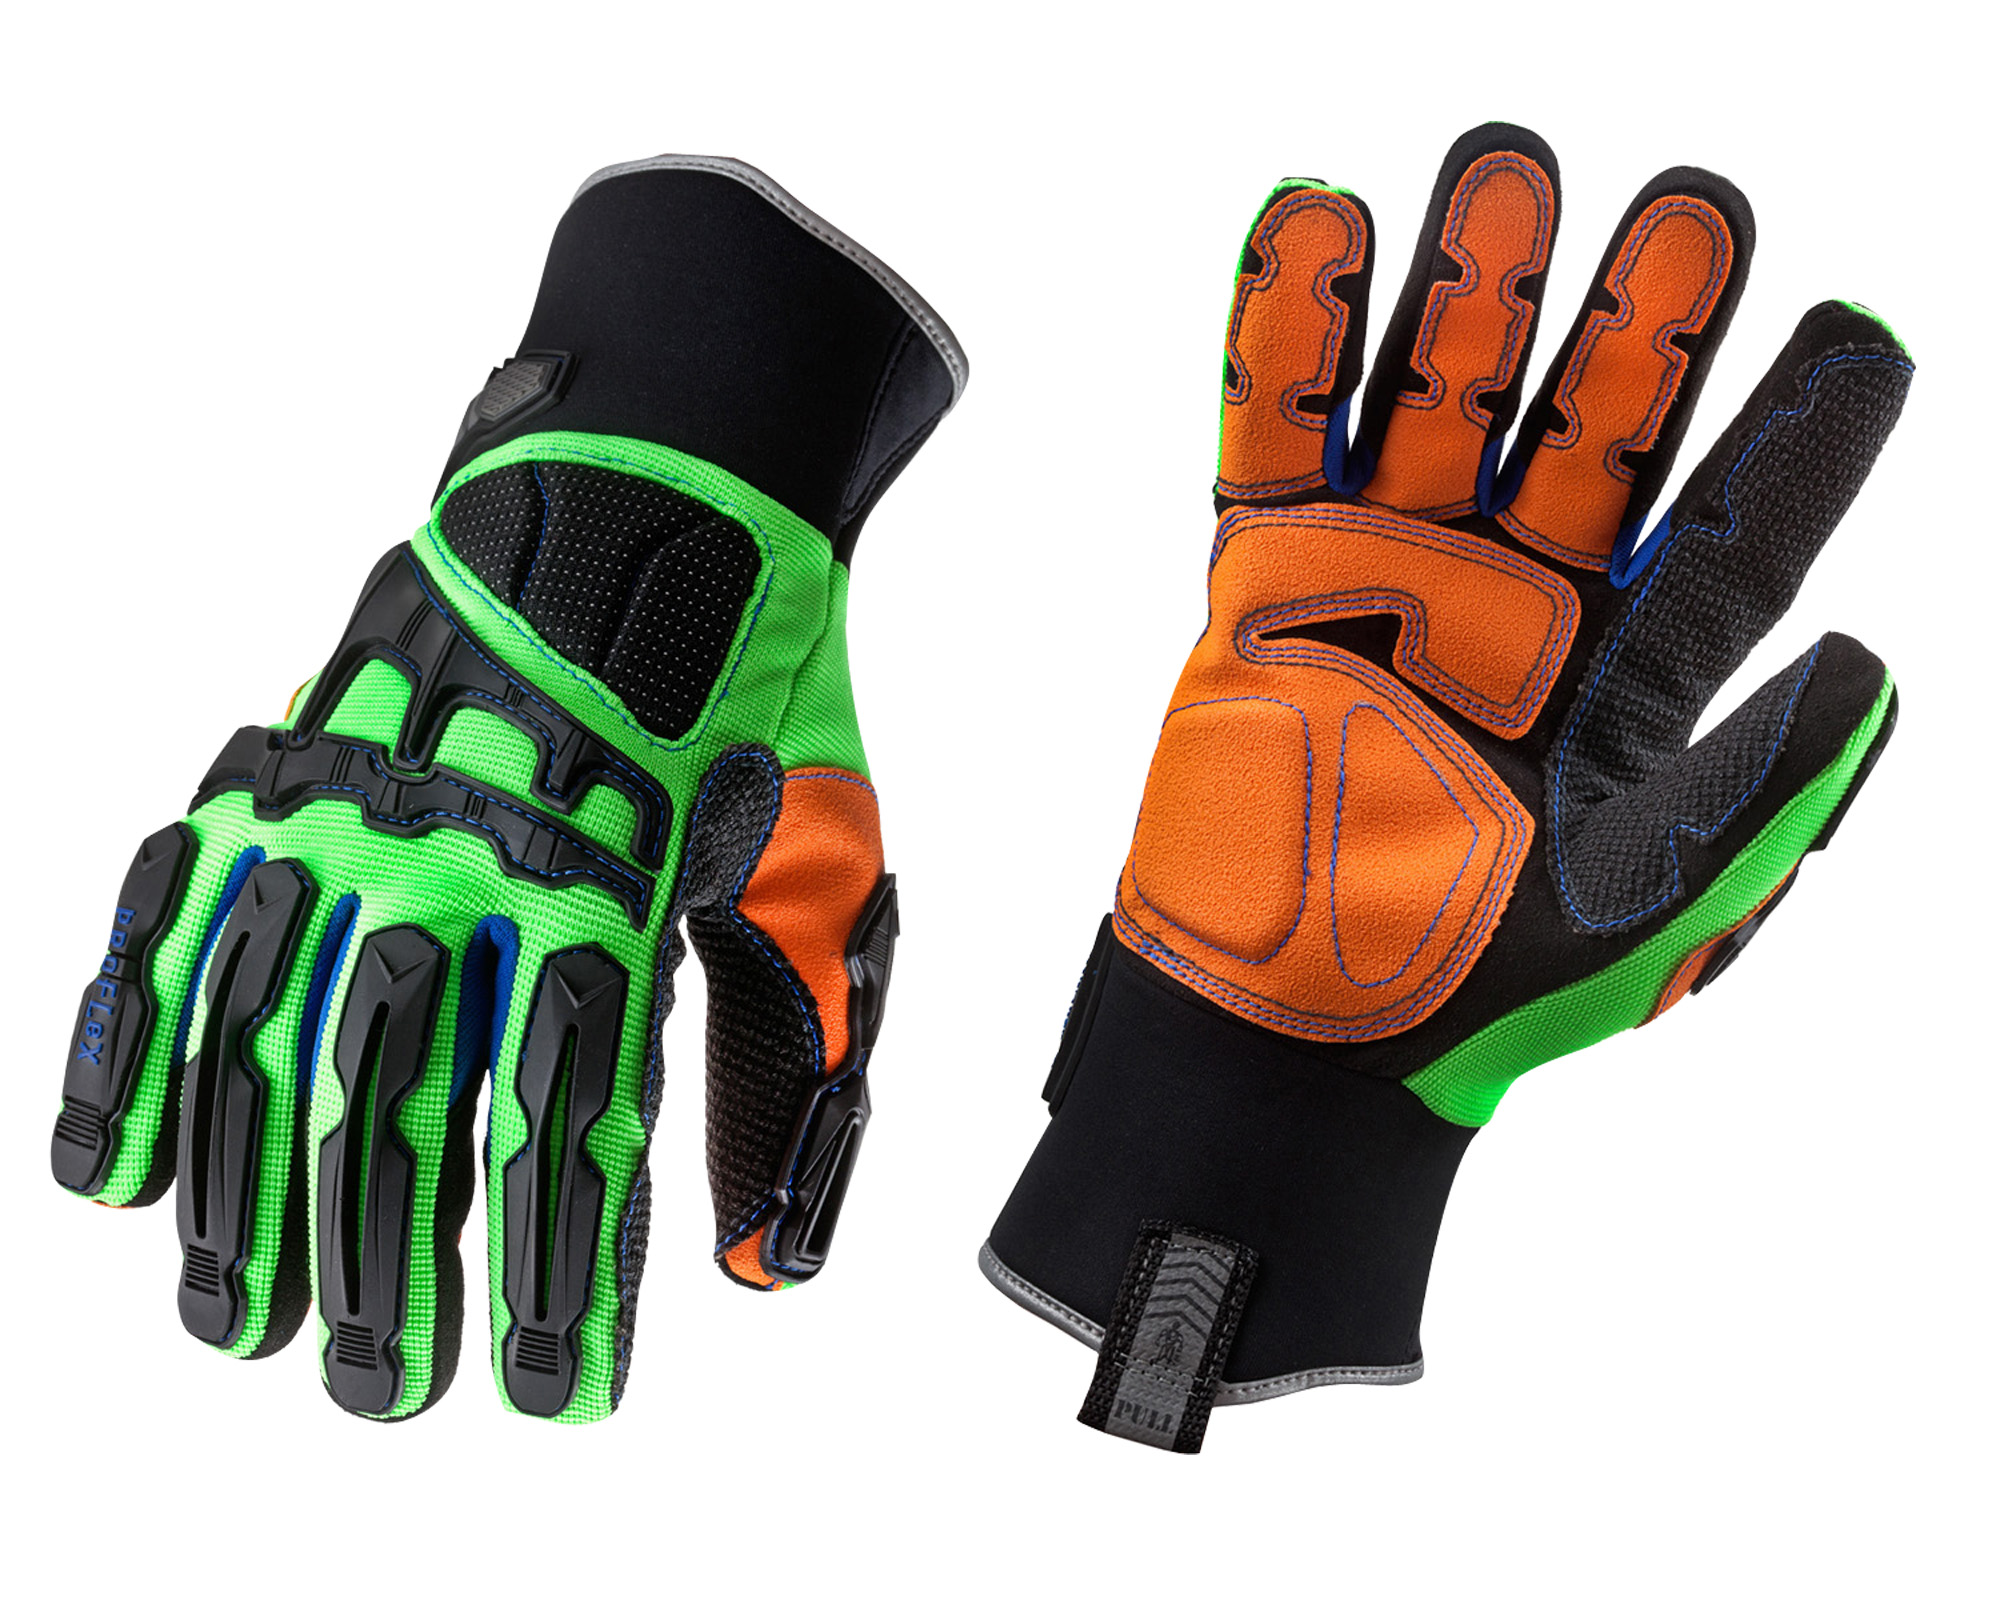 925F(x)WP Dorsal Impact-Reducing Gloves